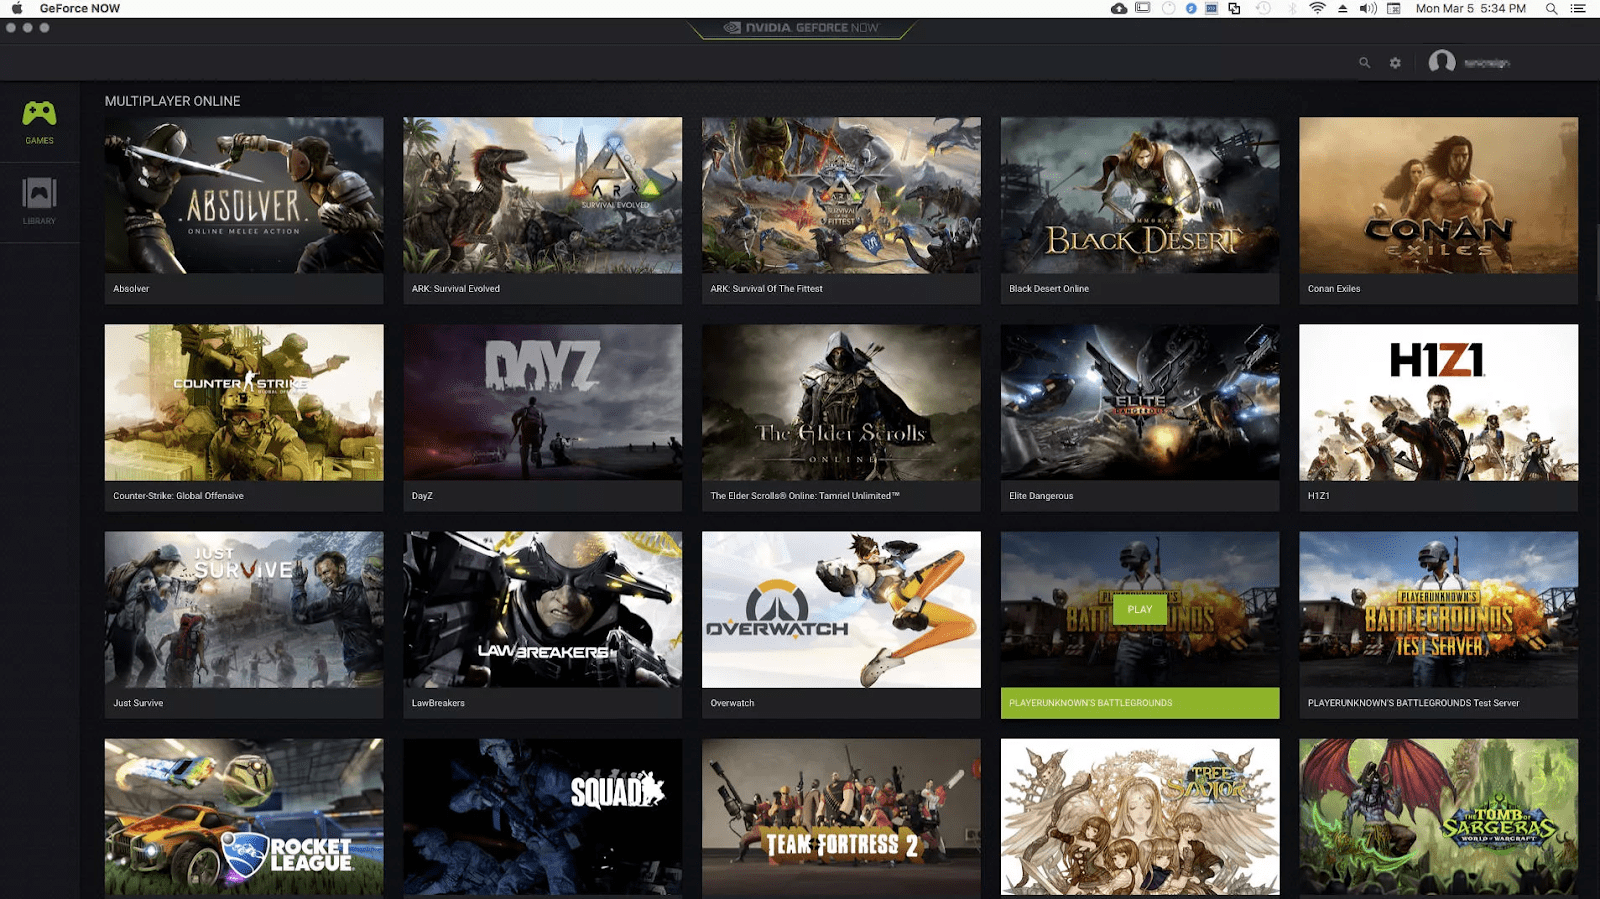 GeForce Now - Best Cloud Gaming Services